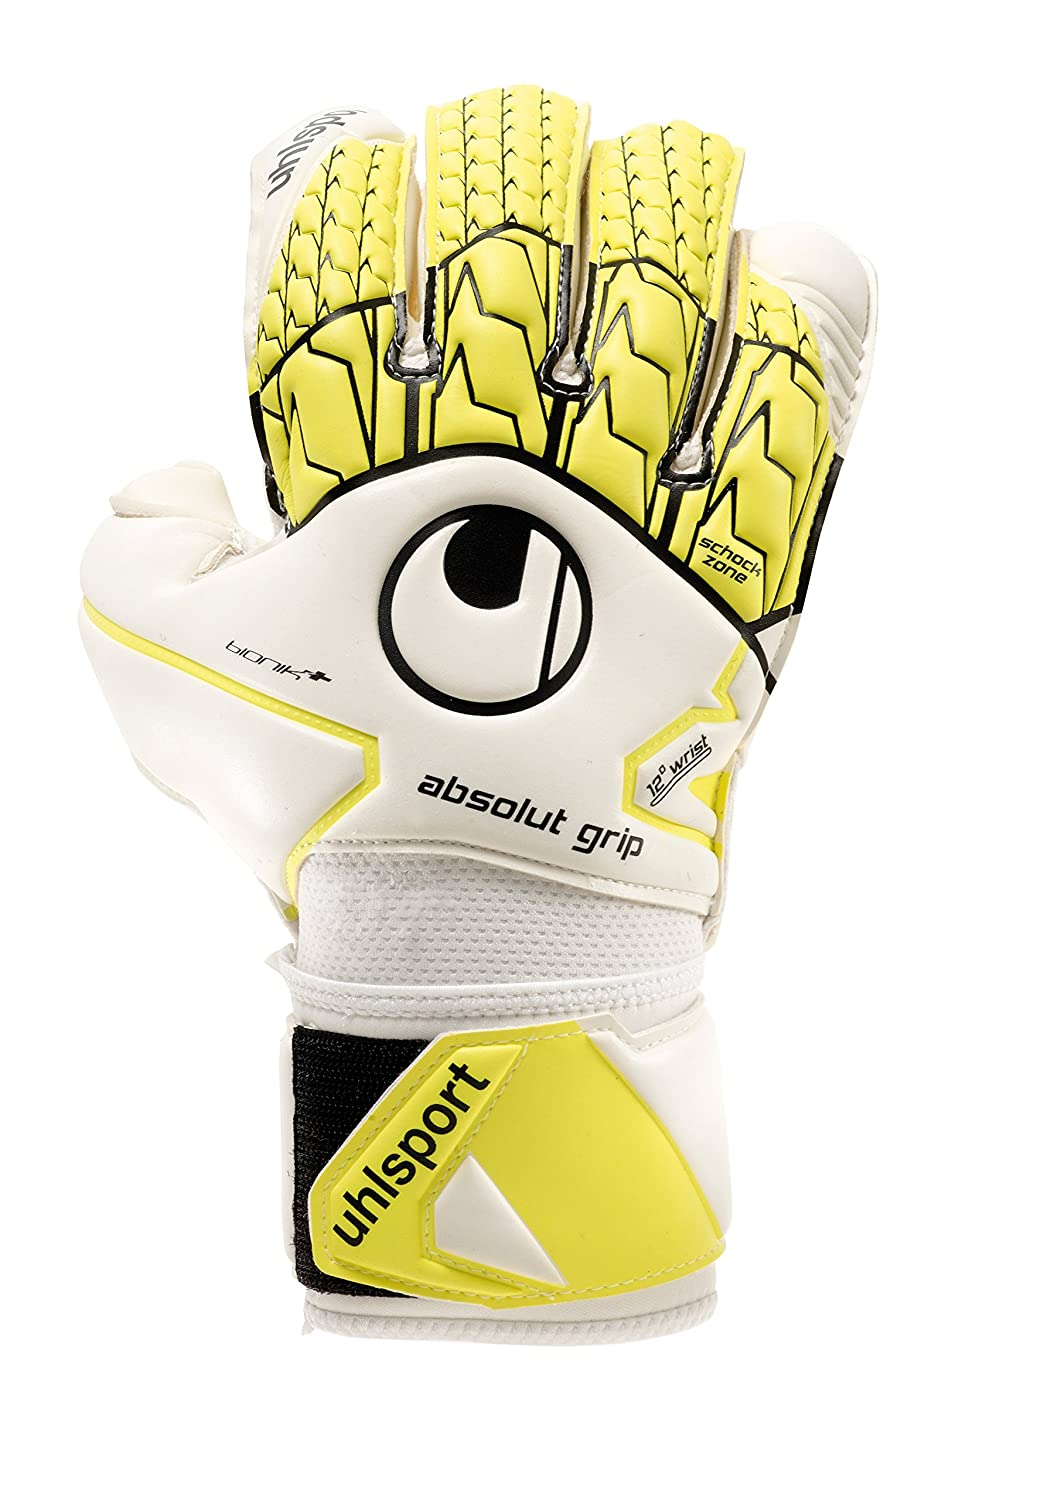 Uhlsport Absolutgrip Bionik+ Torwarthandschuhe Herren